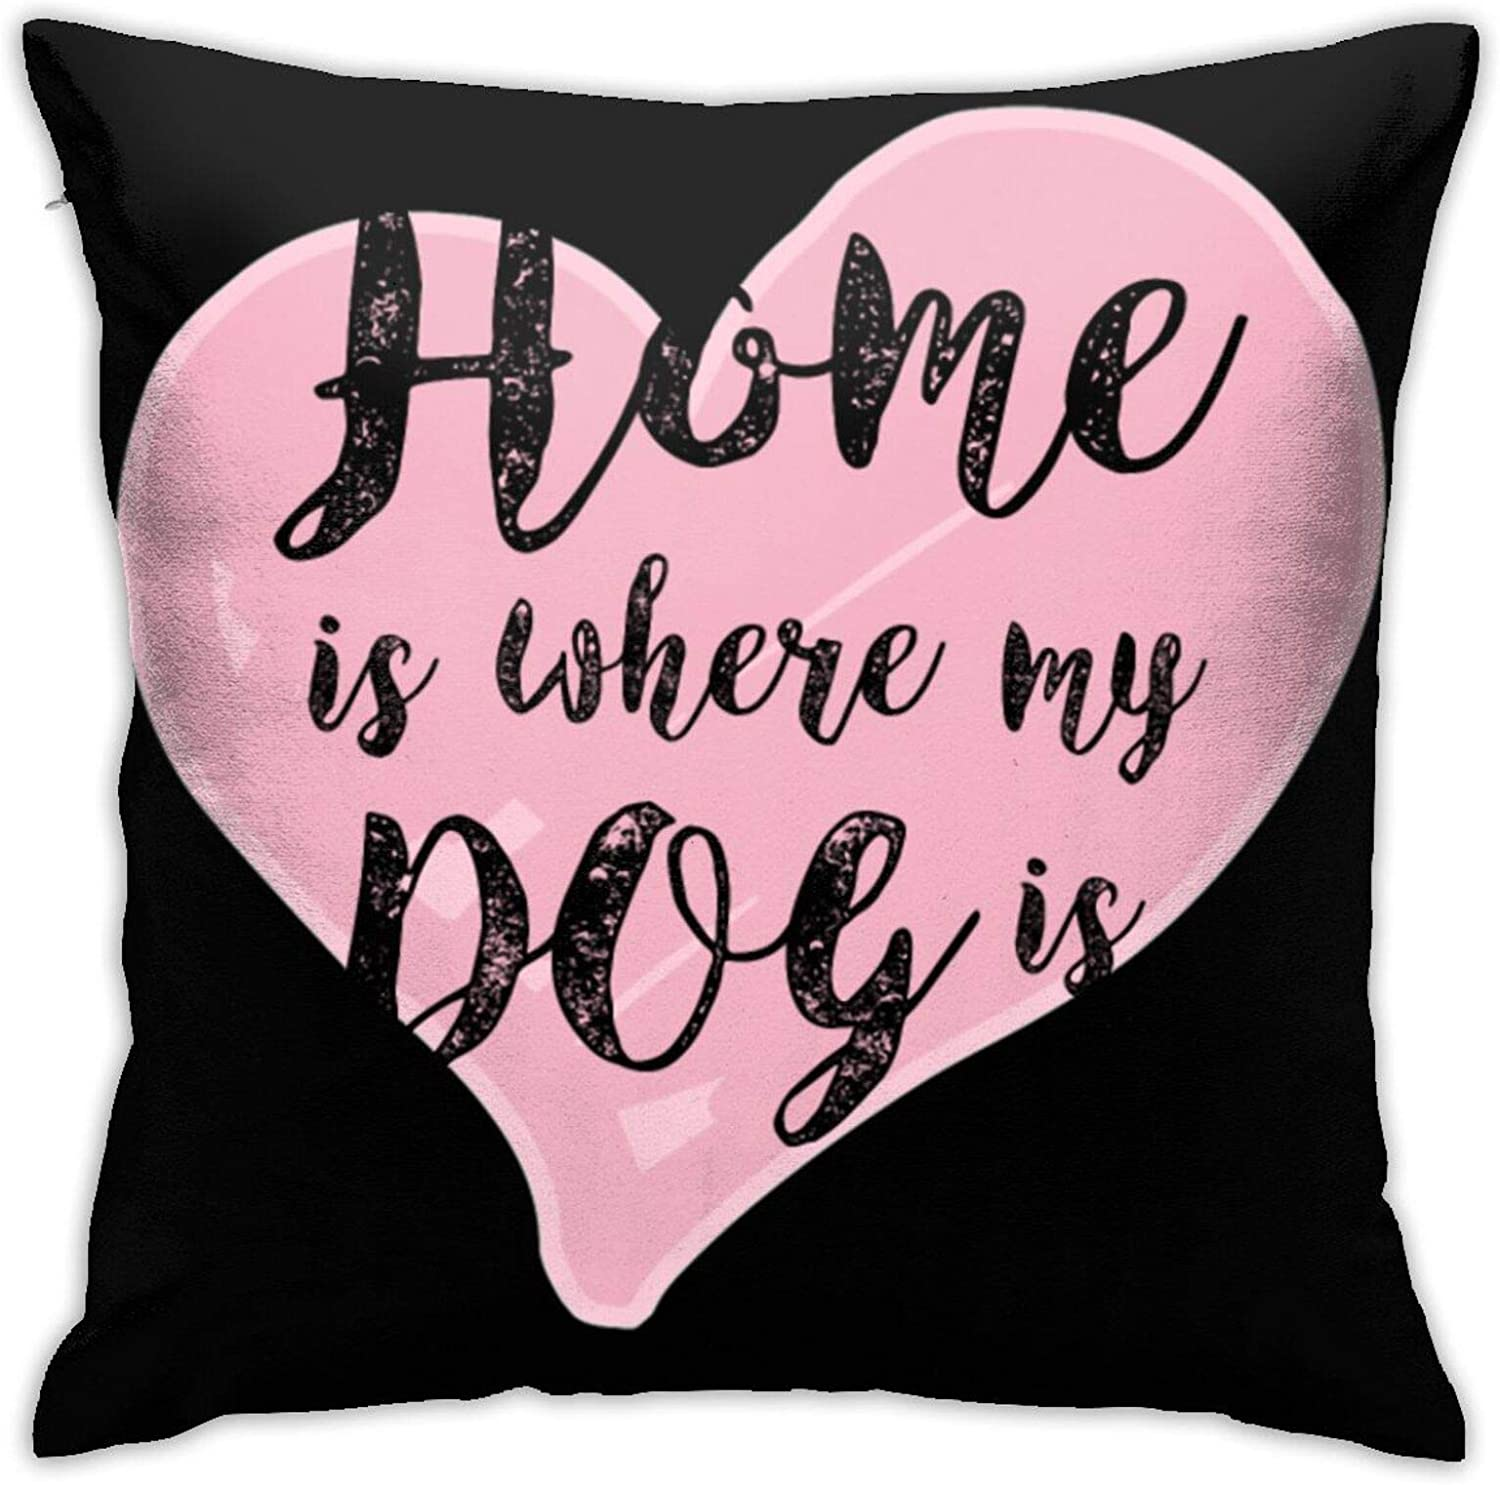 Xiaojun Home is Where My Dog is Pullover Hoodie Pillowcases, Floor Pillowcases, Pillowcases, Sofa Cushions, Cushion Covers, Backrest Covers, Car Cushion Interiors